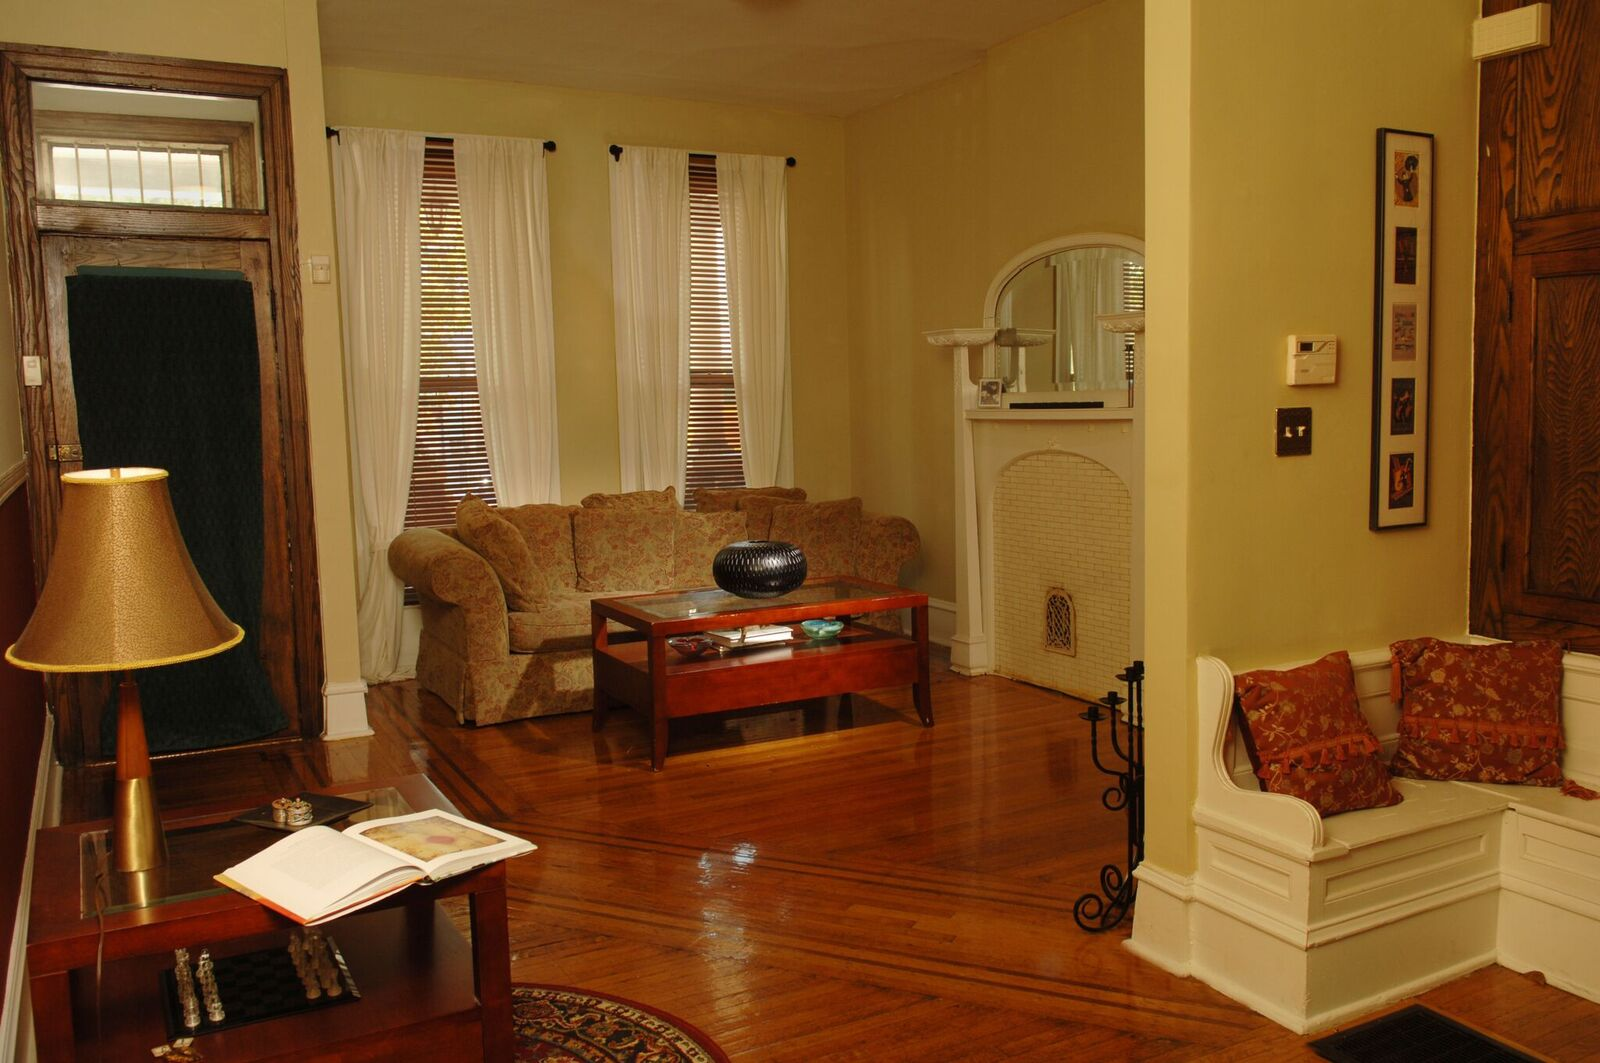 living room and showing seated bench_preview.jpeg